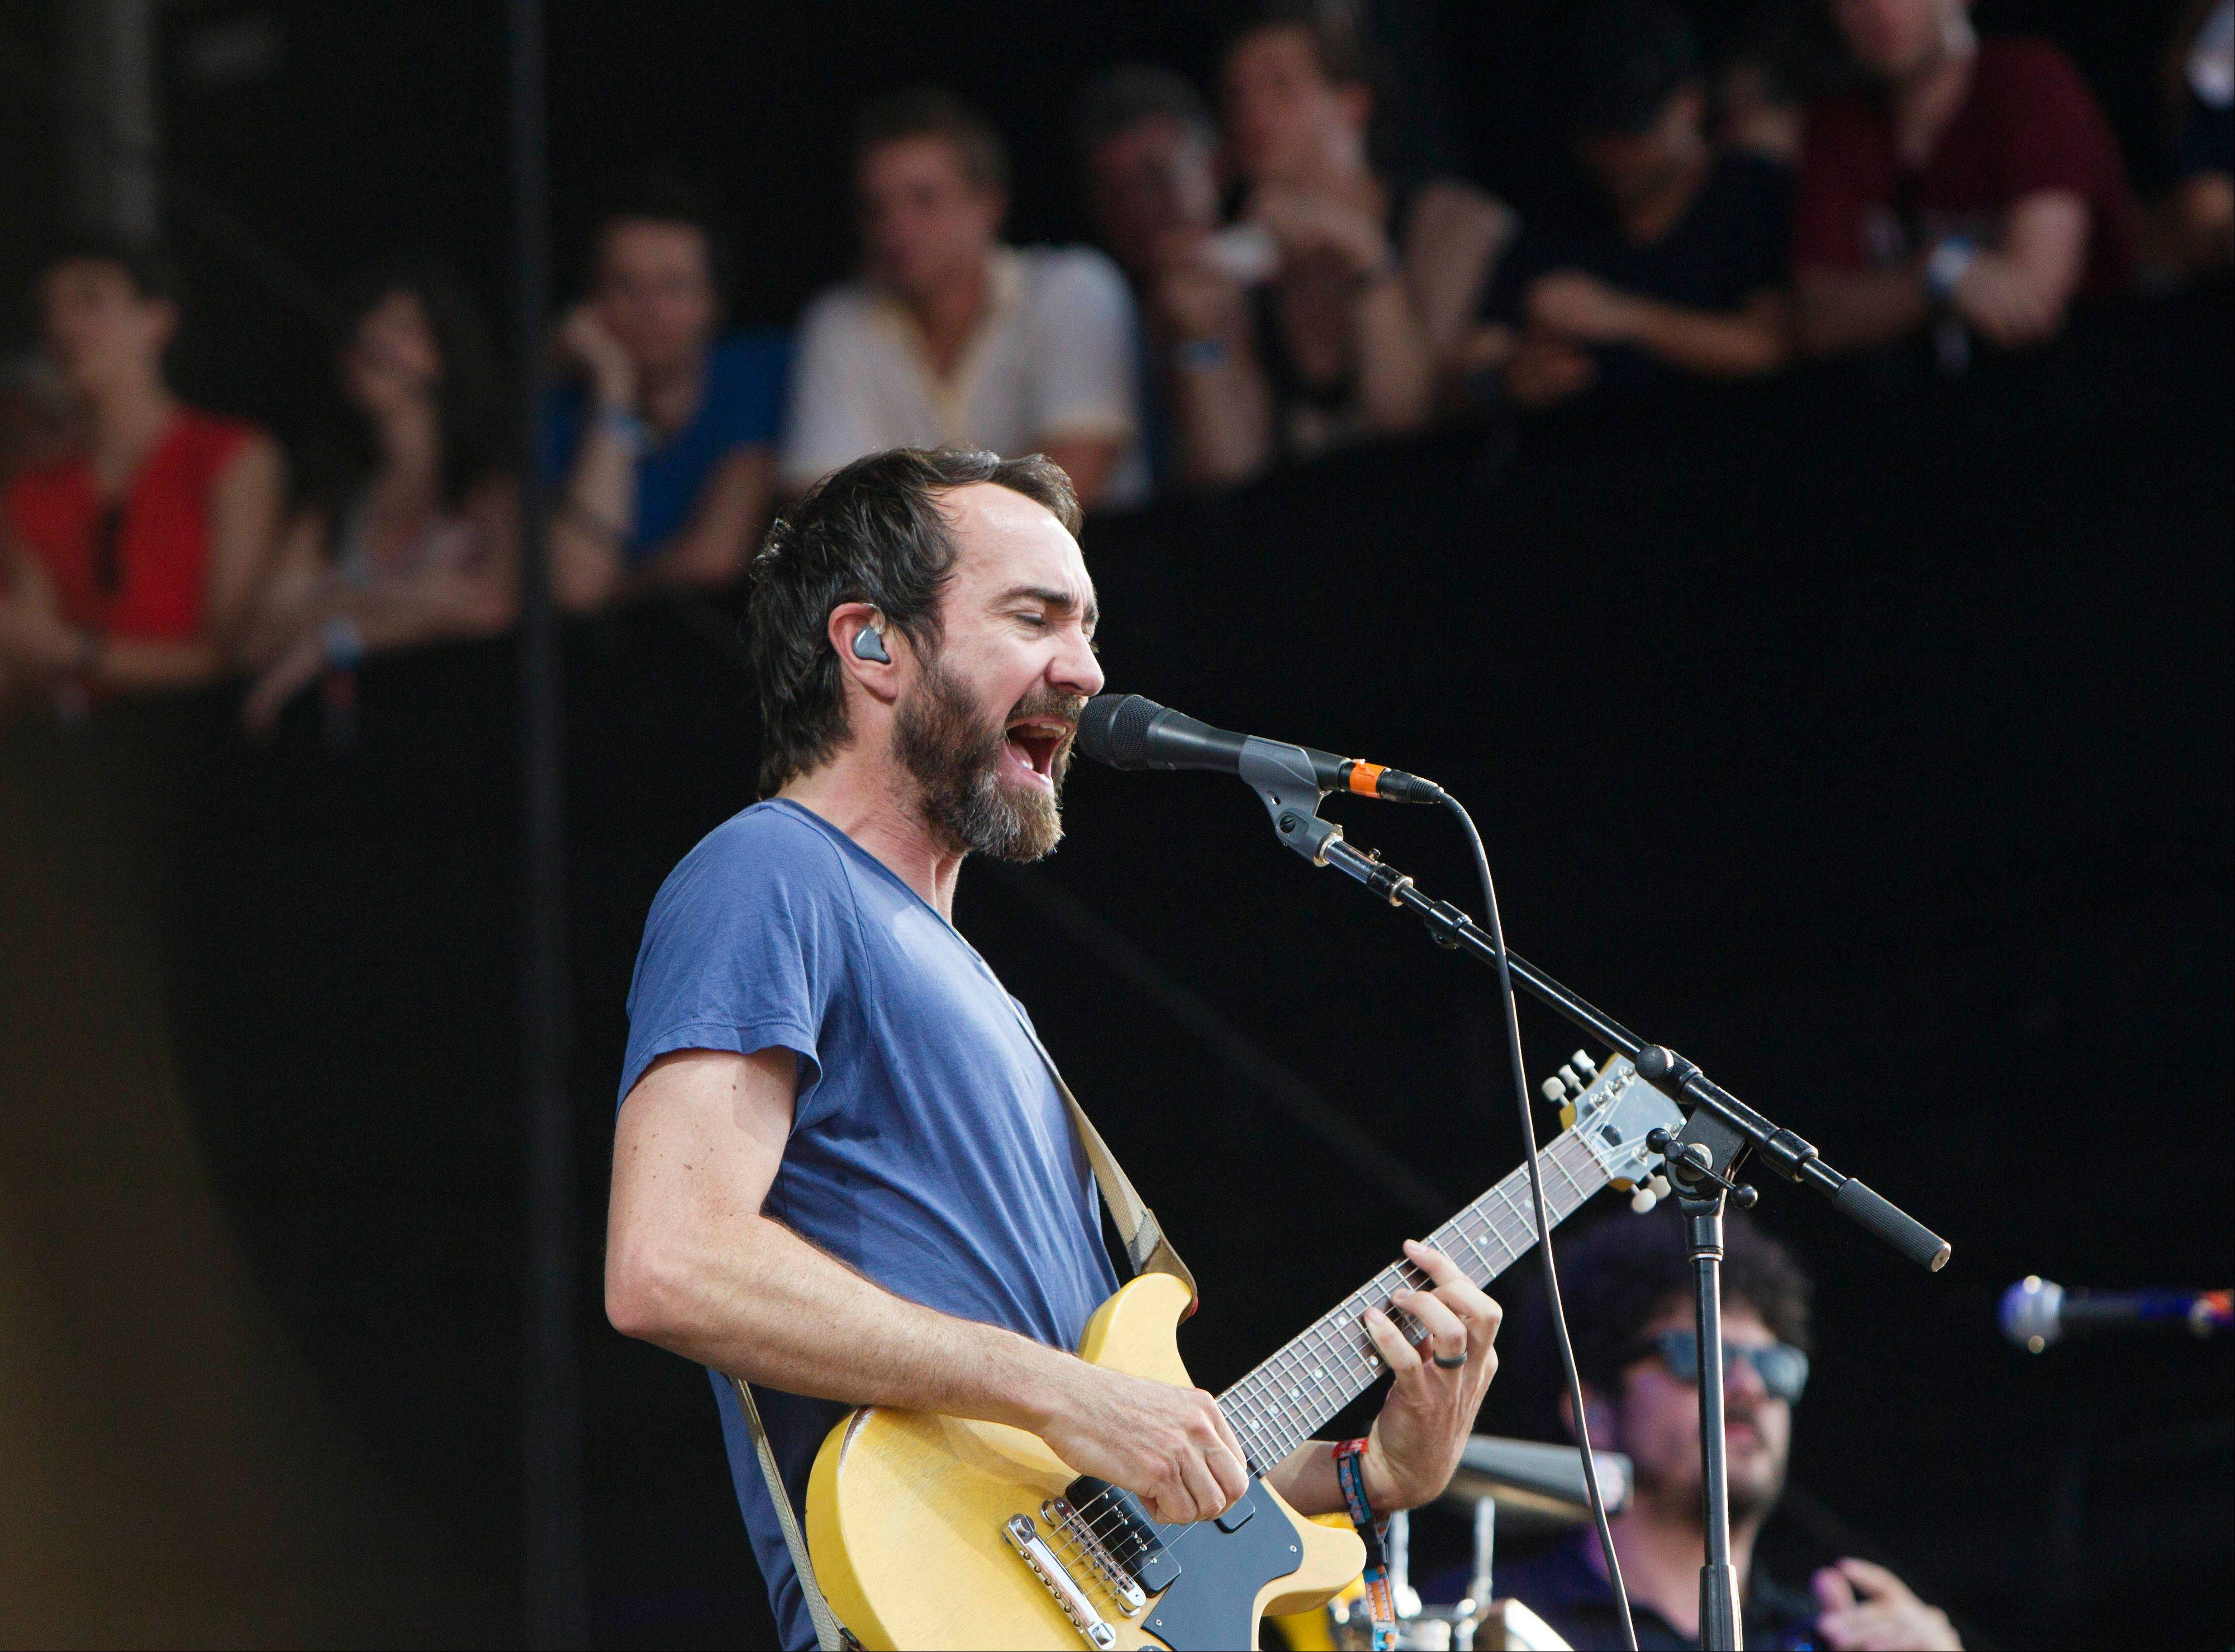 James Mercer from The Shins performs at Lollapalooza in Chicago's Grant Park on Friday, Aug. 3, 2012.